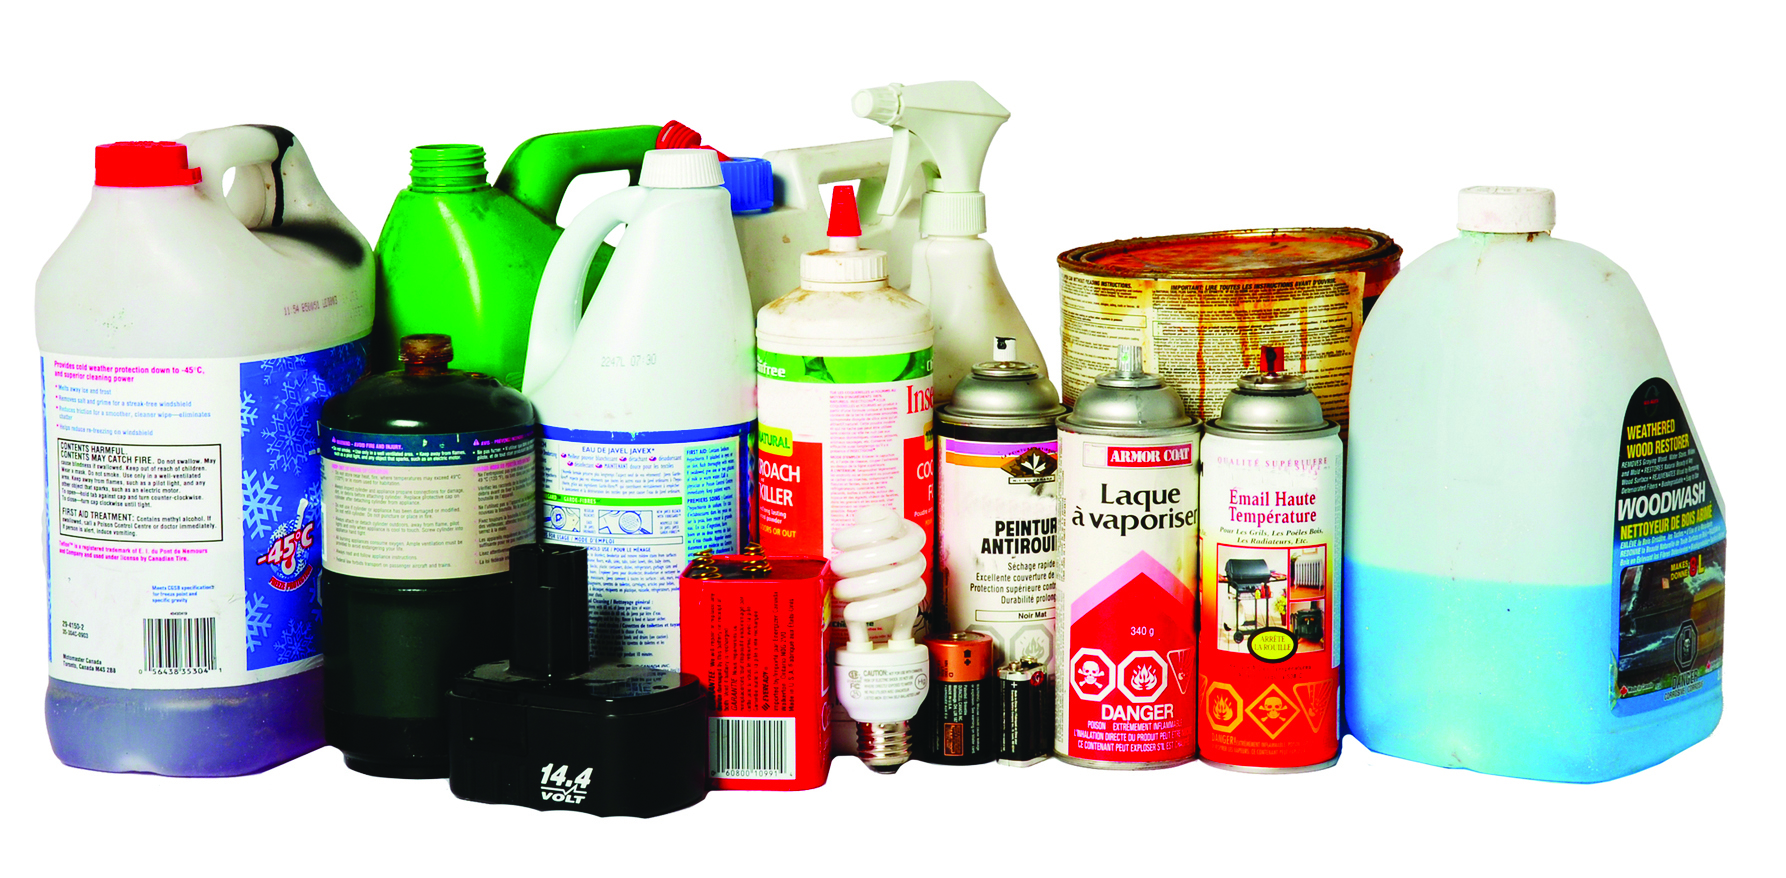 Assorted household waste items